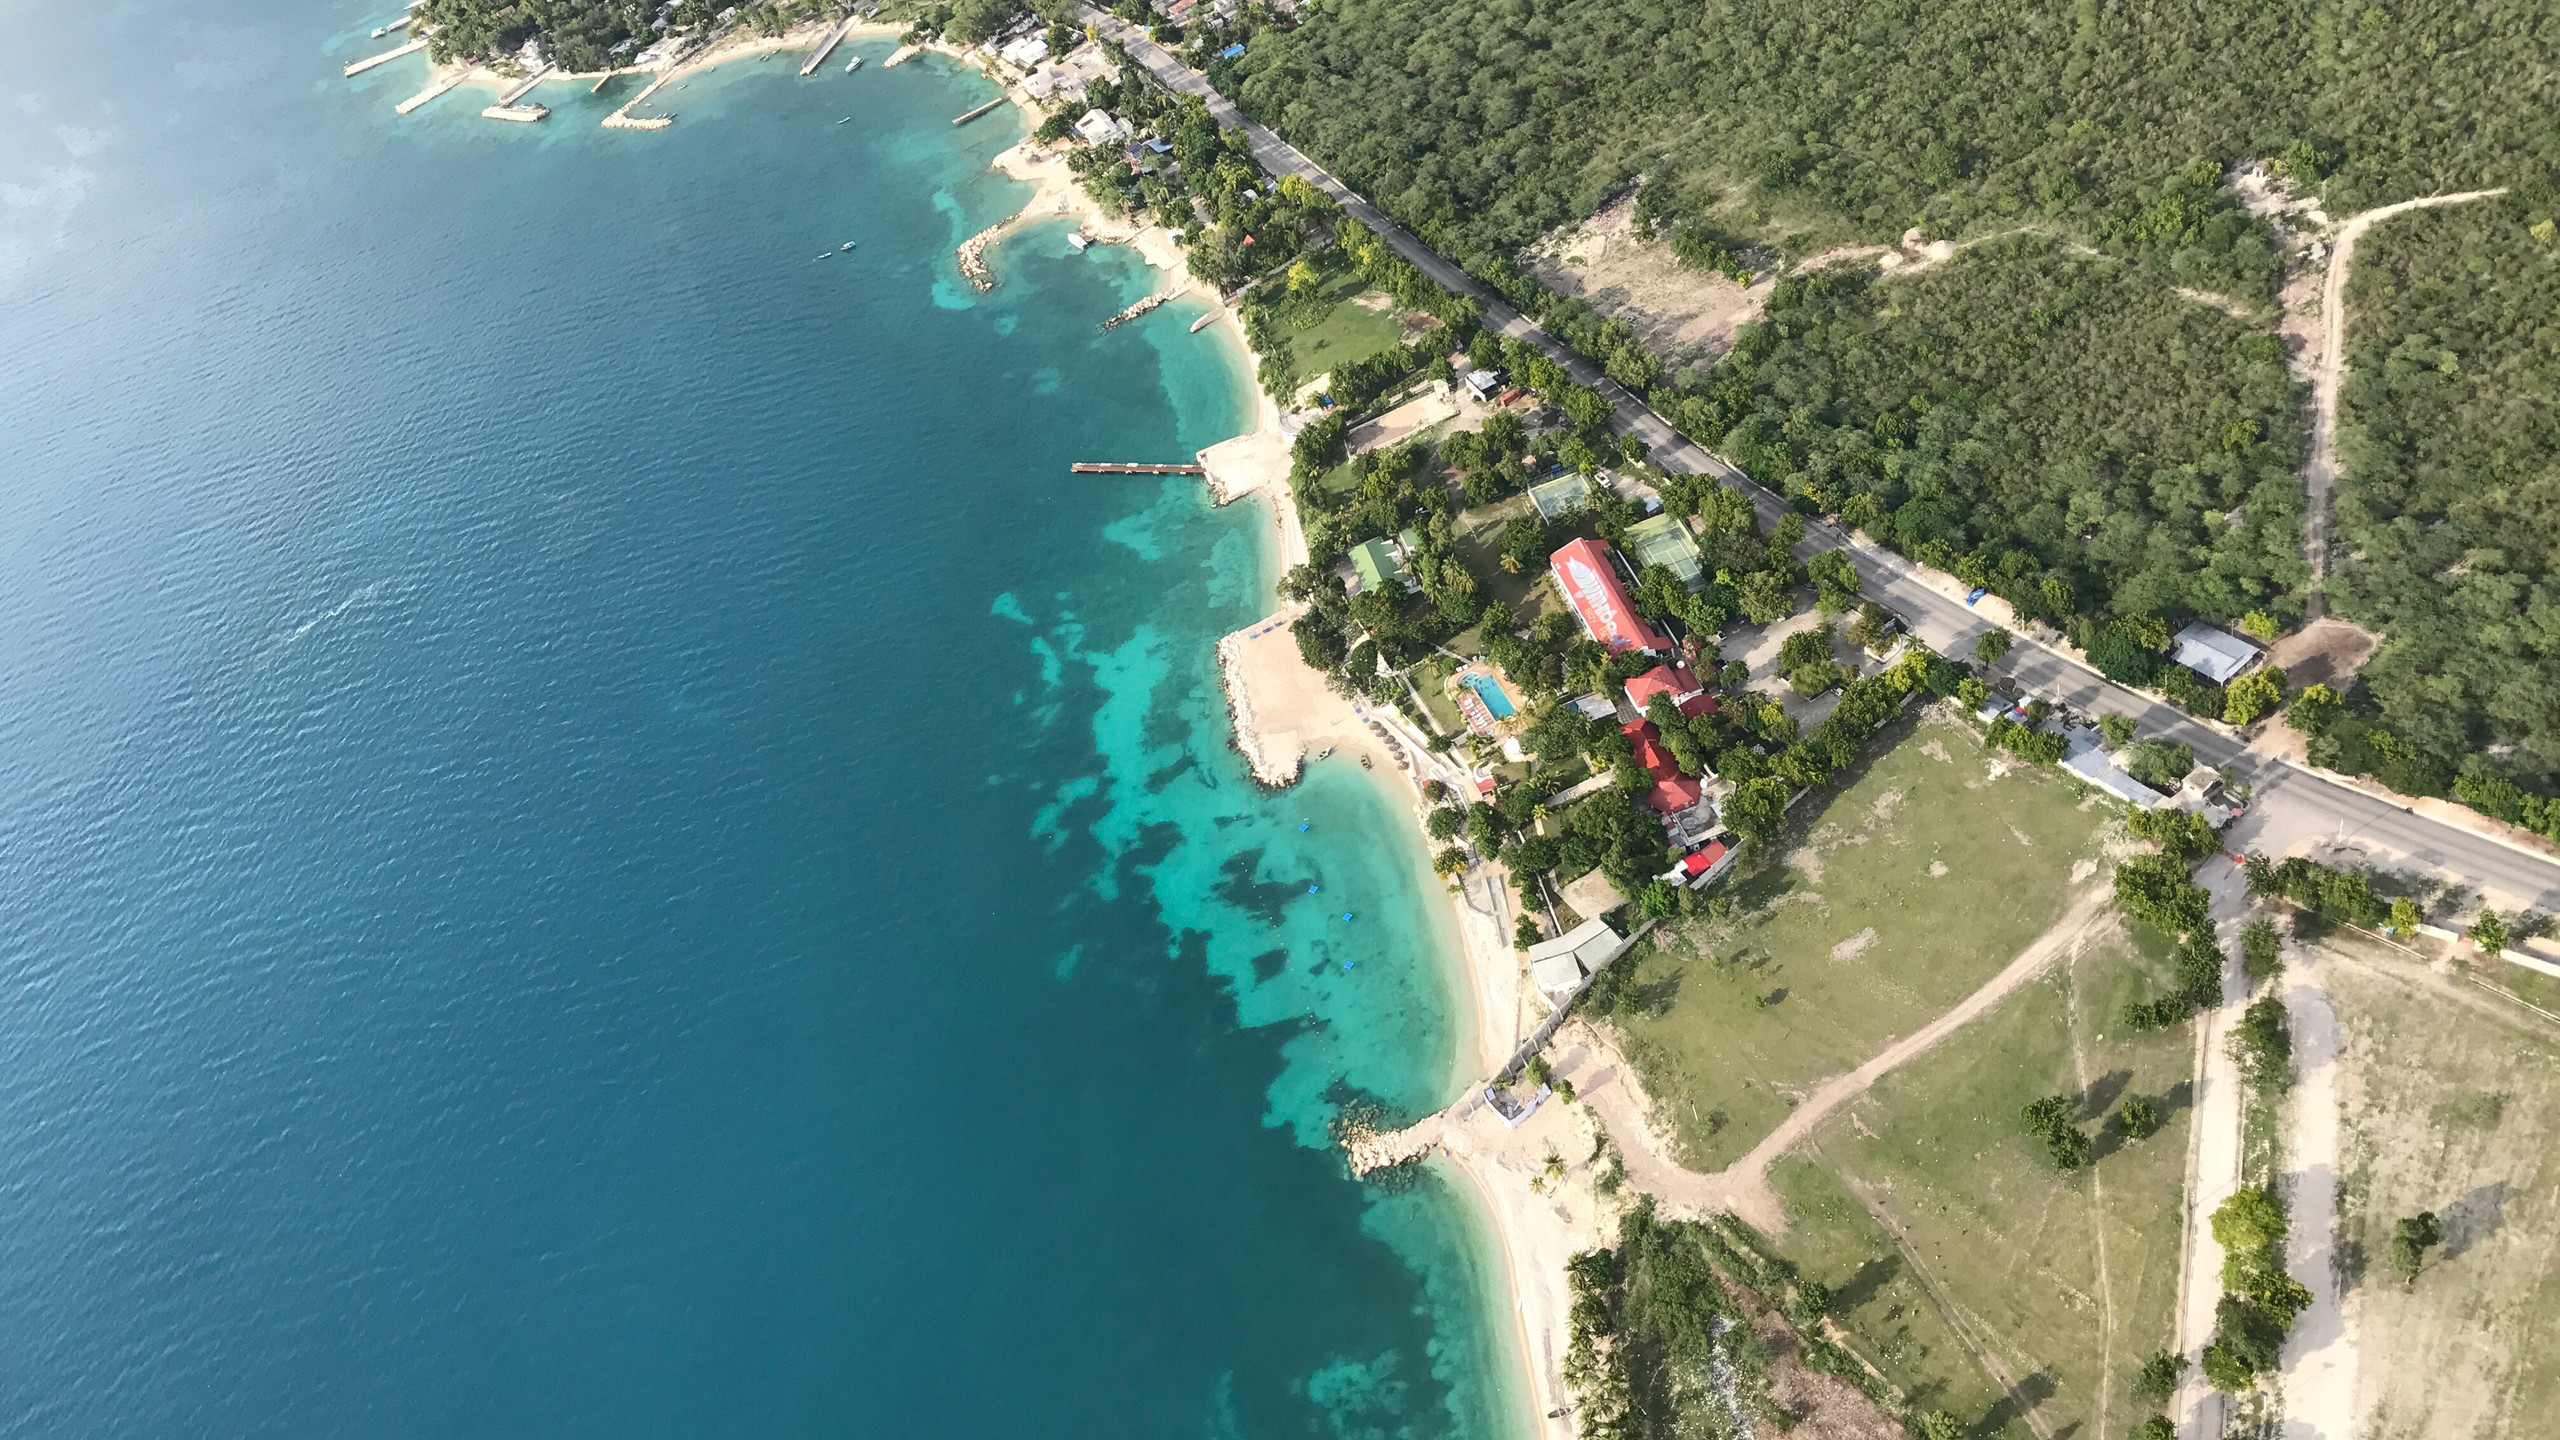 Paragliding over Haiti